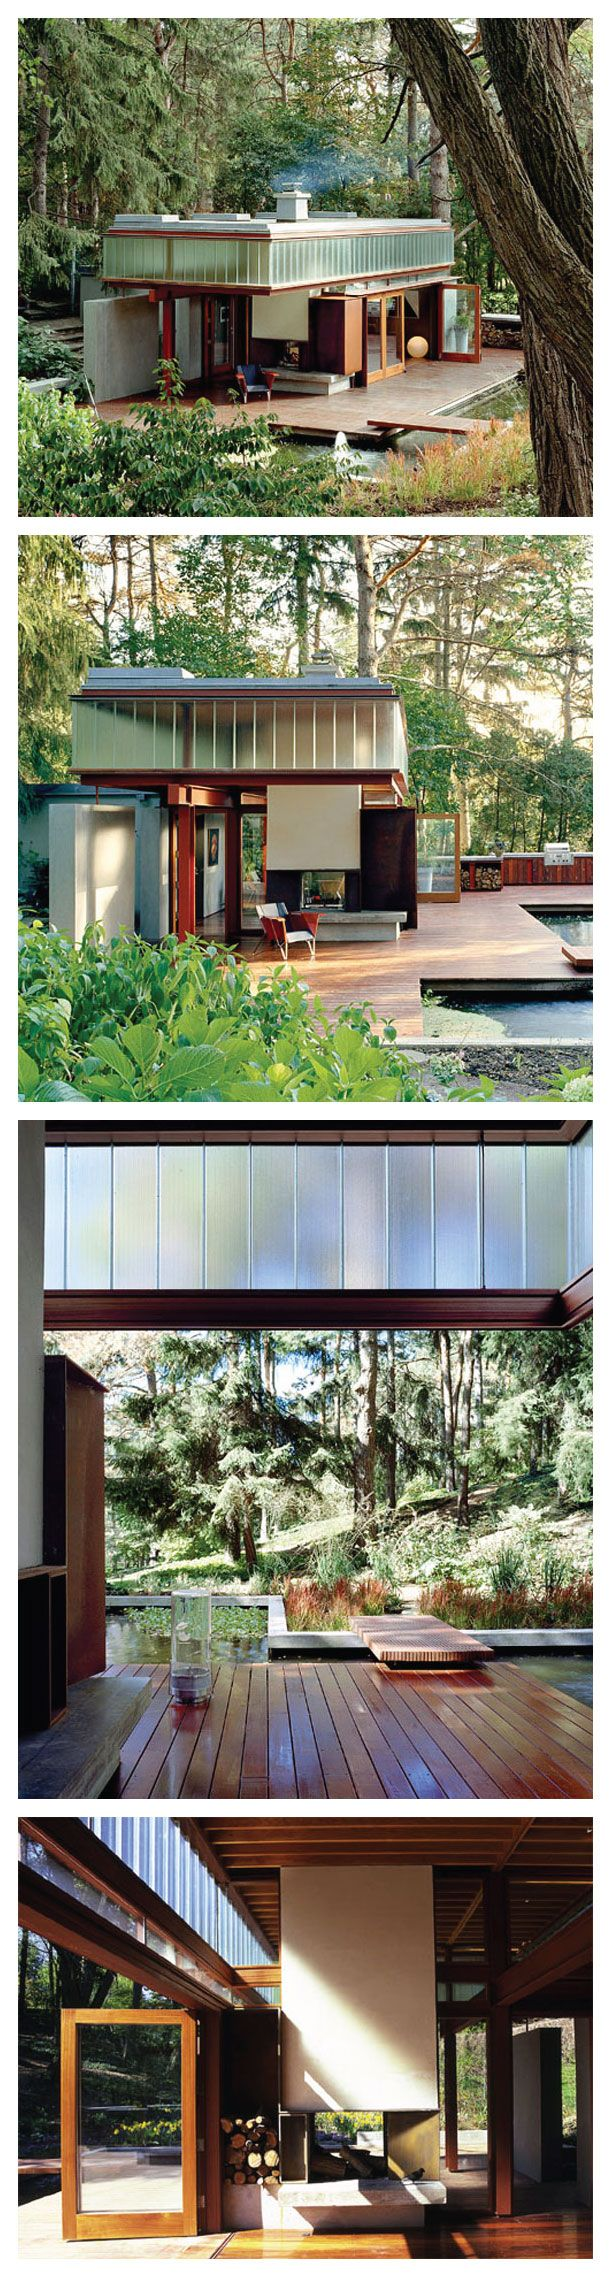 Container can be. The Ravine Guest Home by Shim-Sutcliffe Architects